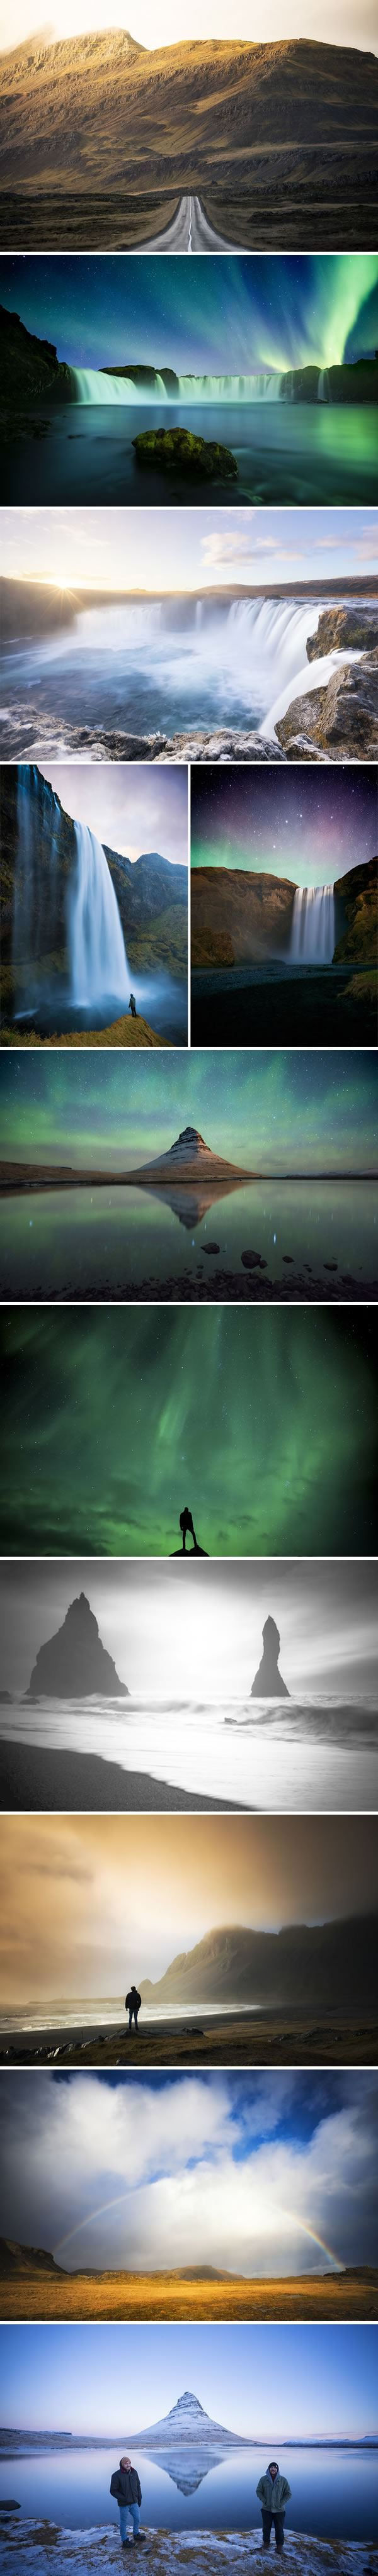 11 Reasons Why You Should Add Iceland To Your Must-Go List (Photos by William Patino)